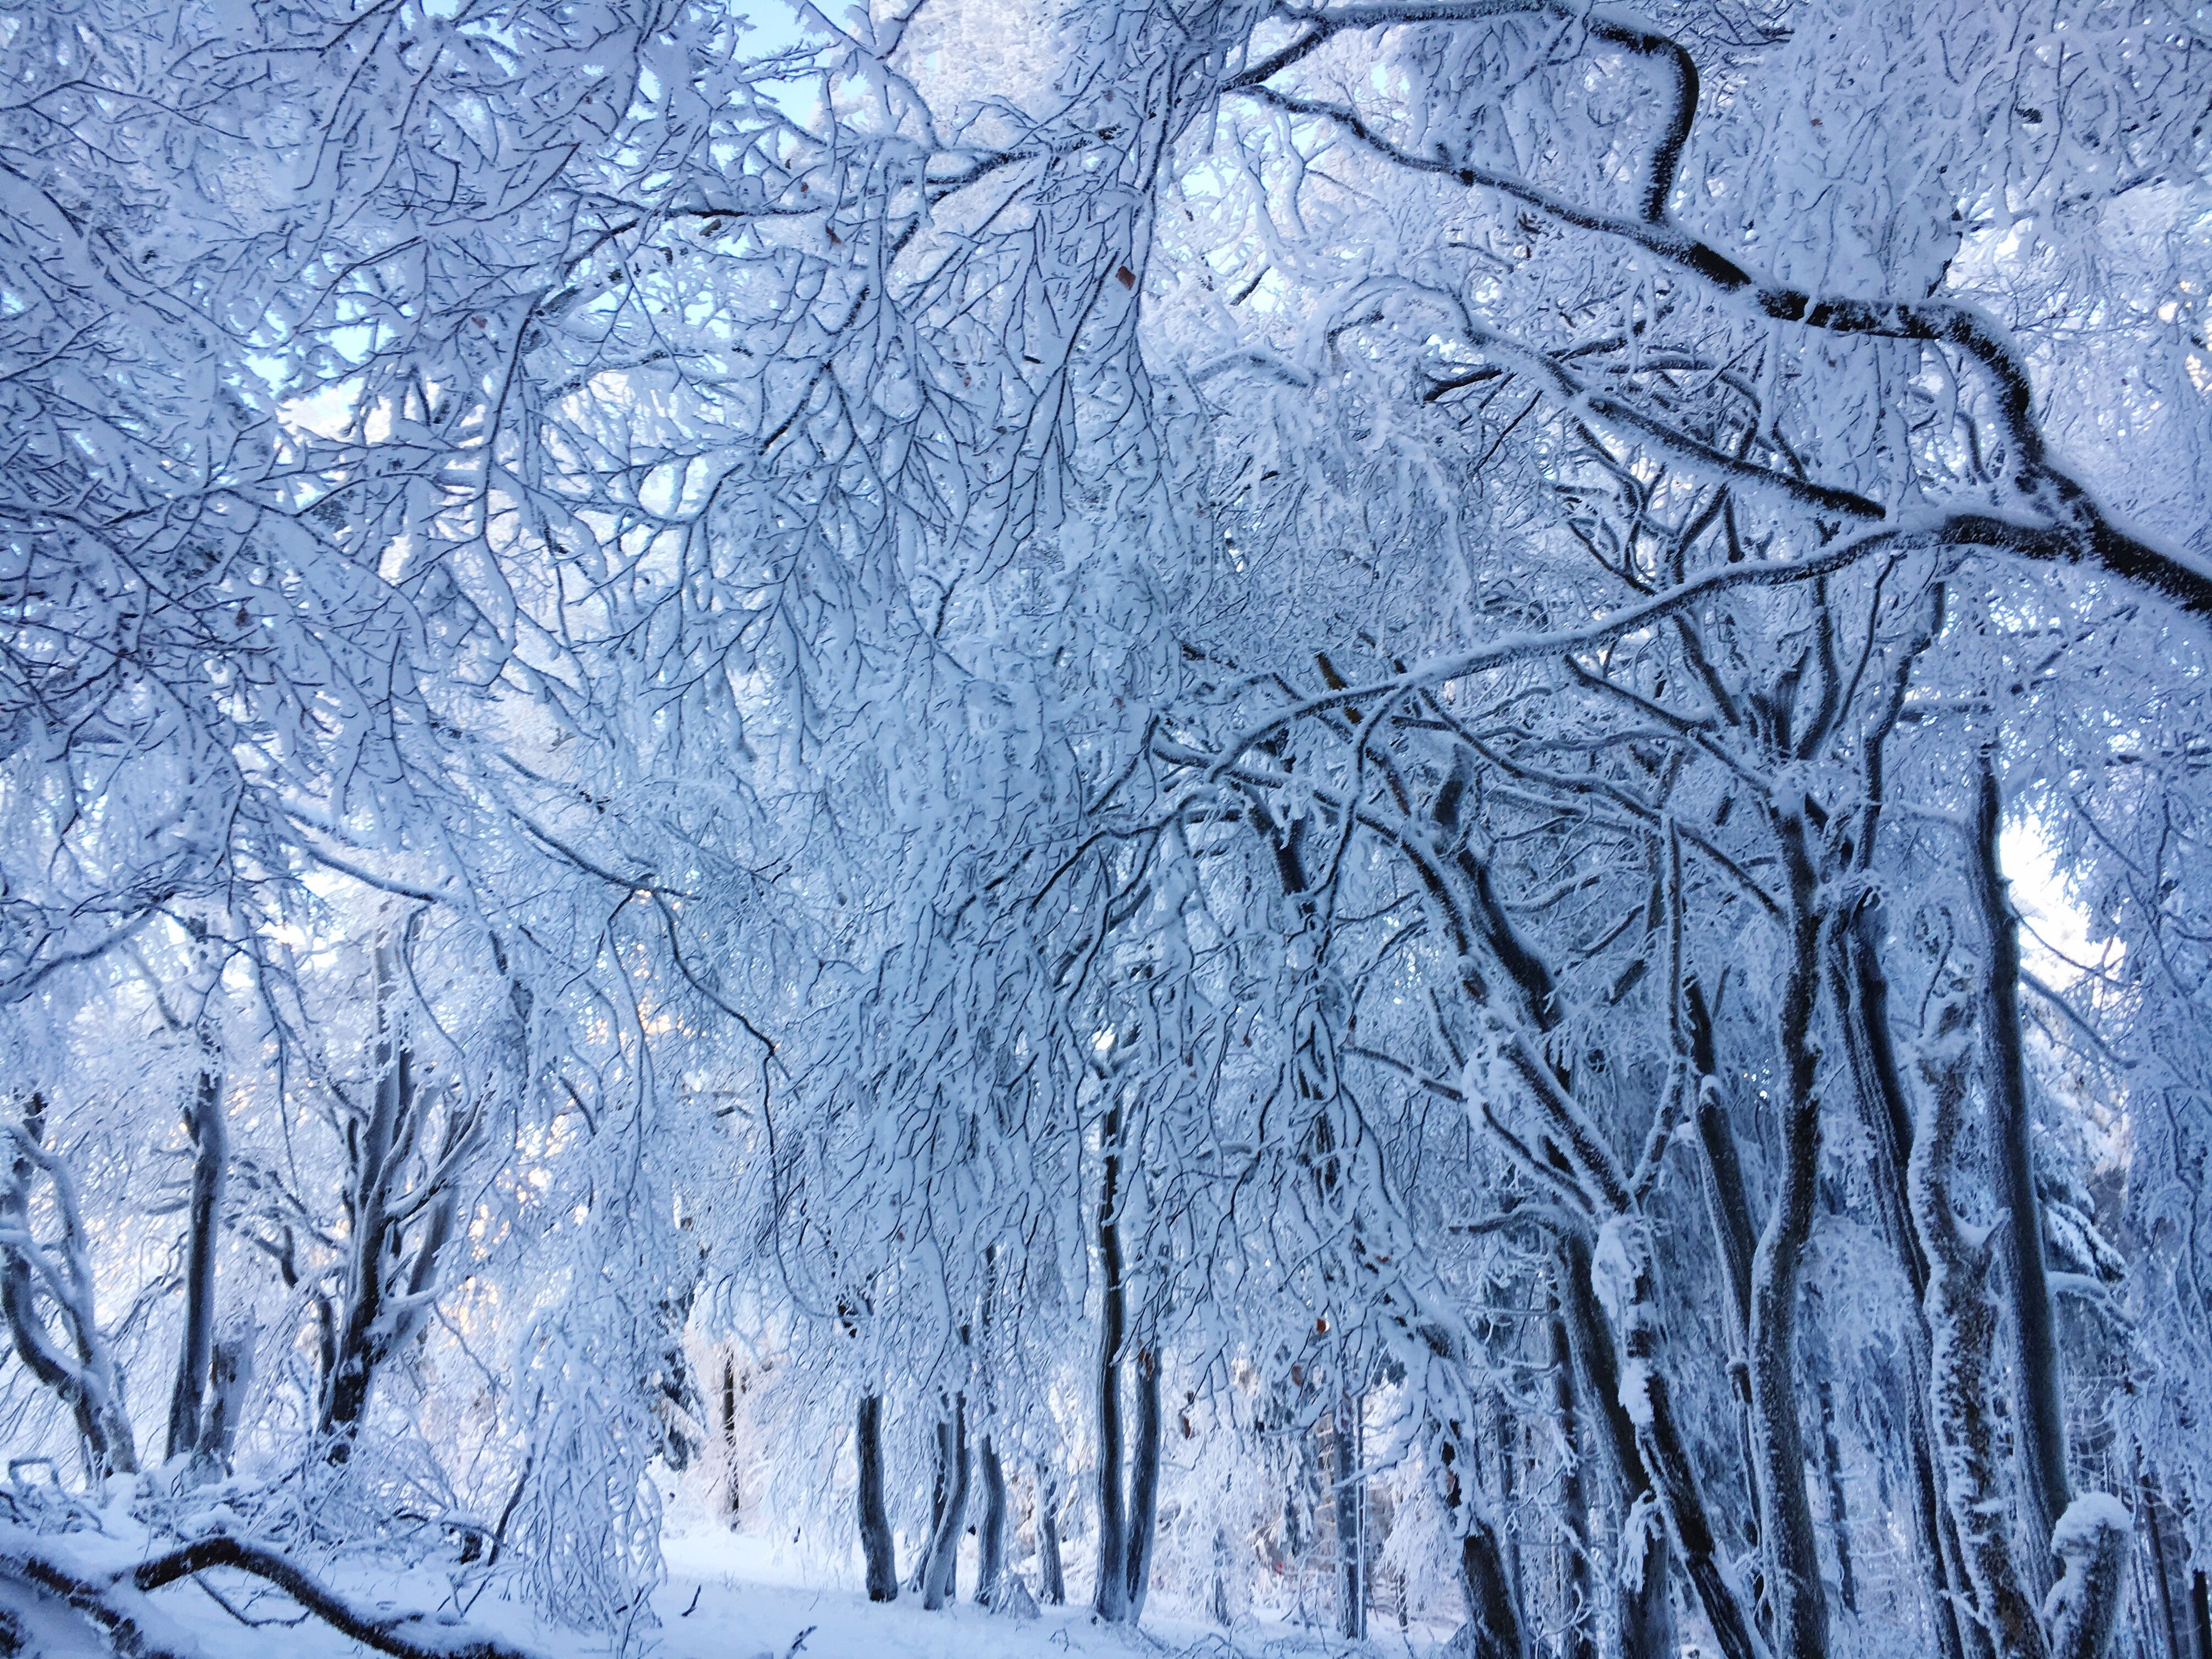 winter, cold temperature, tree, snow, snowflake, bare tree, nature, blue, frost, sky, no people, frozen, beauty in nature, outdoors, snowing, branch, close-up, day, backgrounds